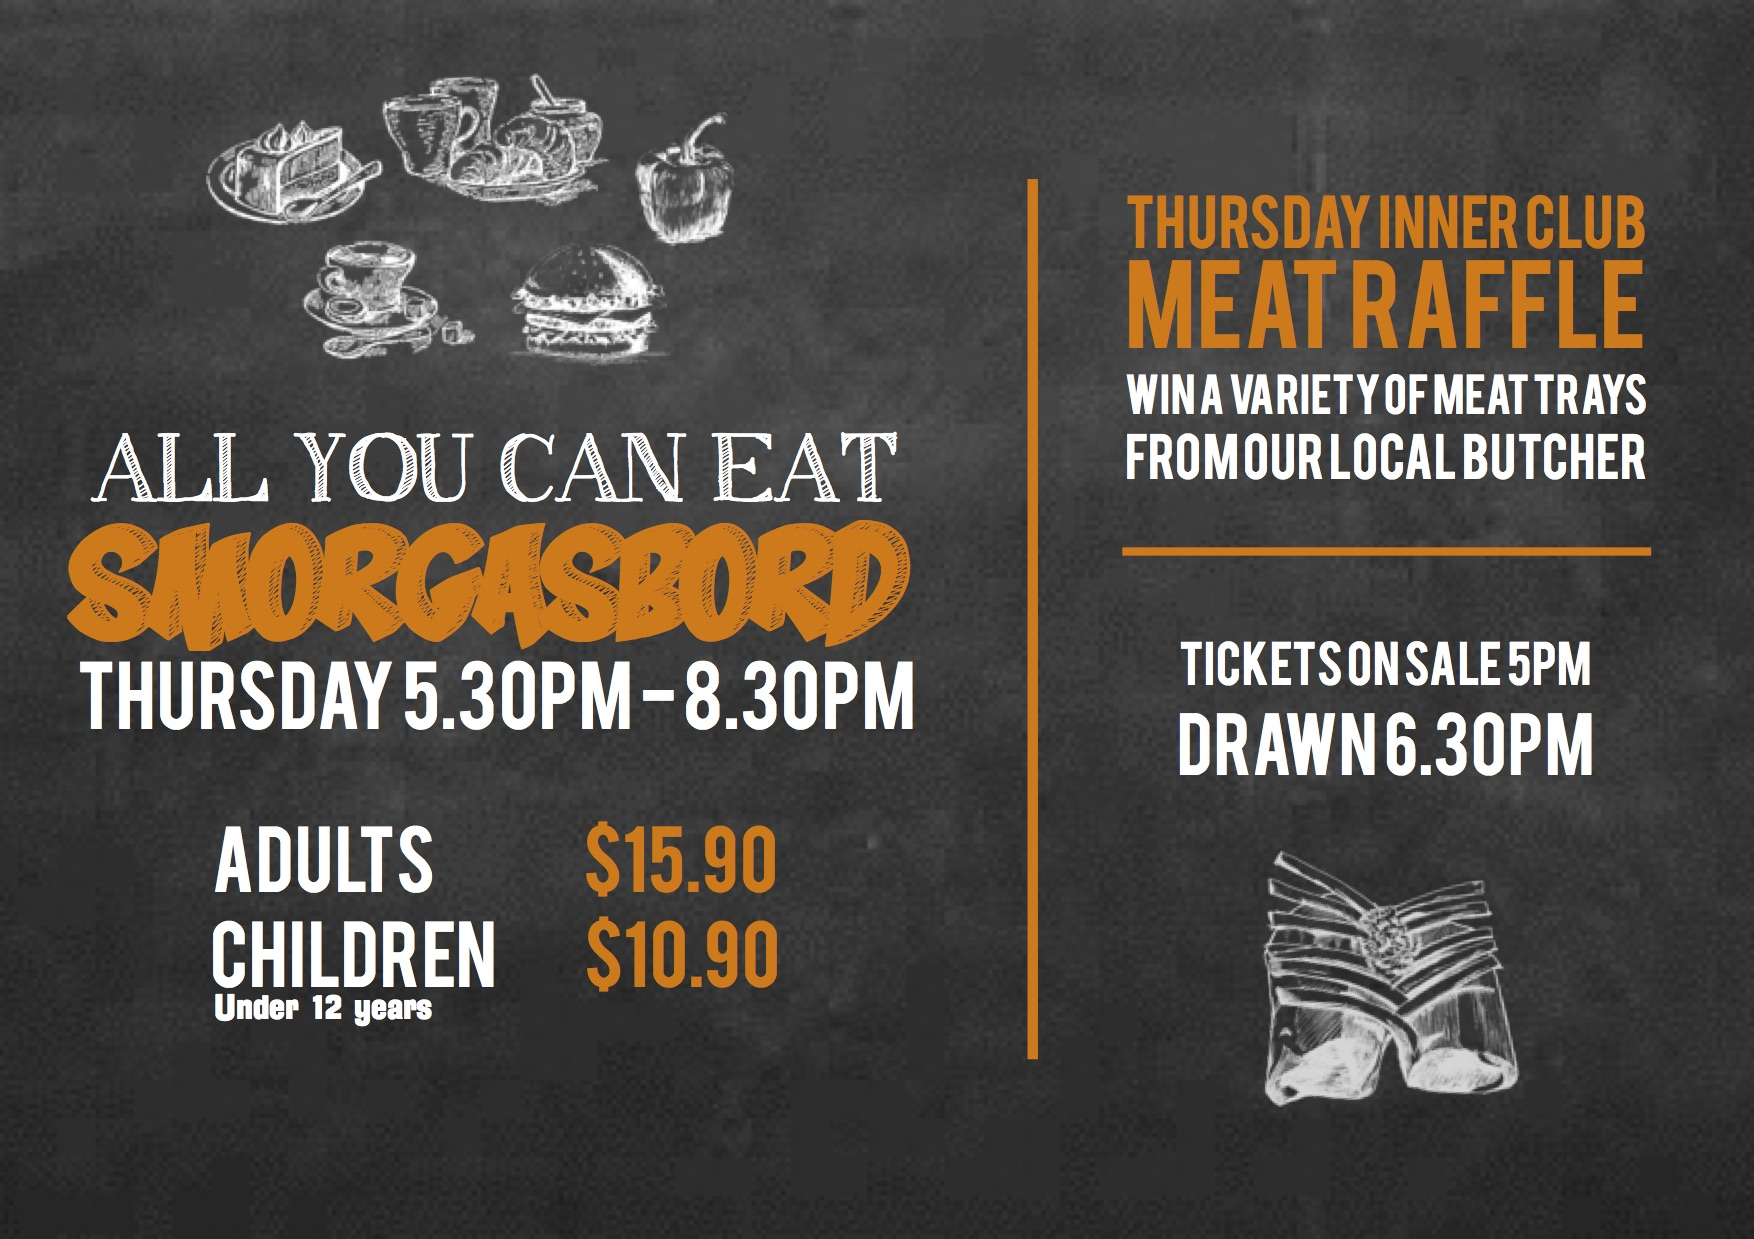 All You Can Eat Smorgasbord + Inner Club Meat Raffle